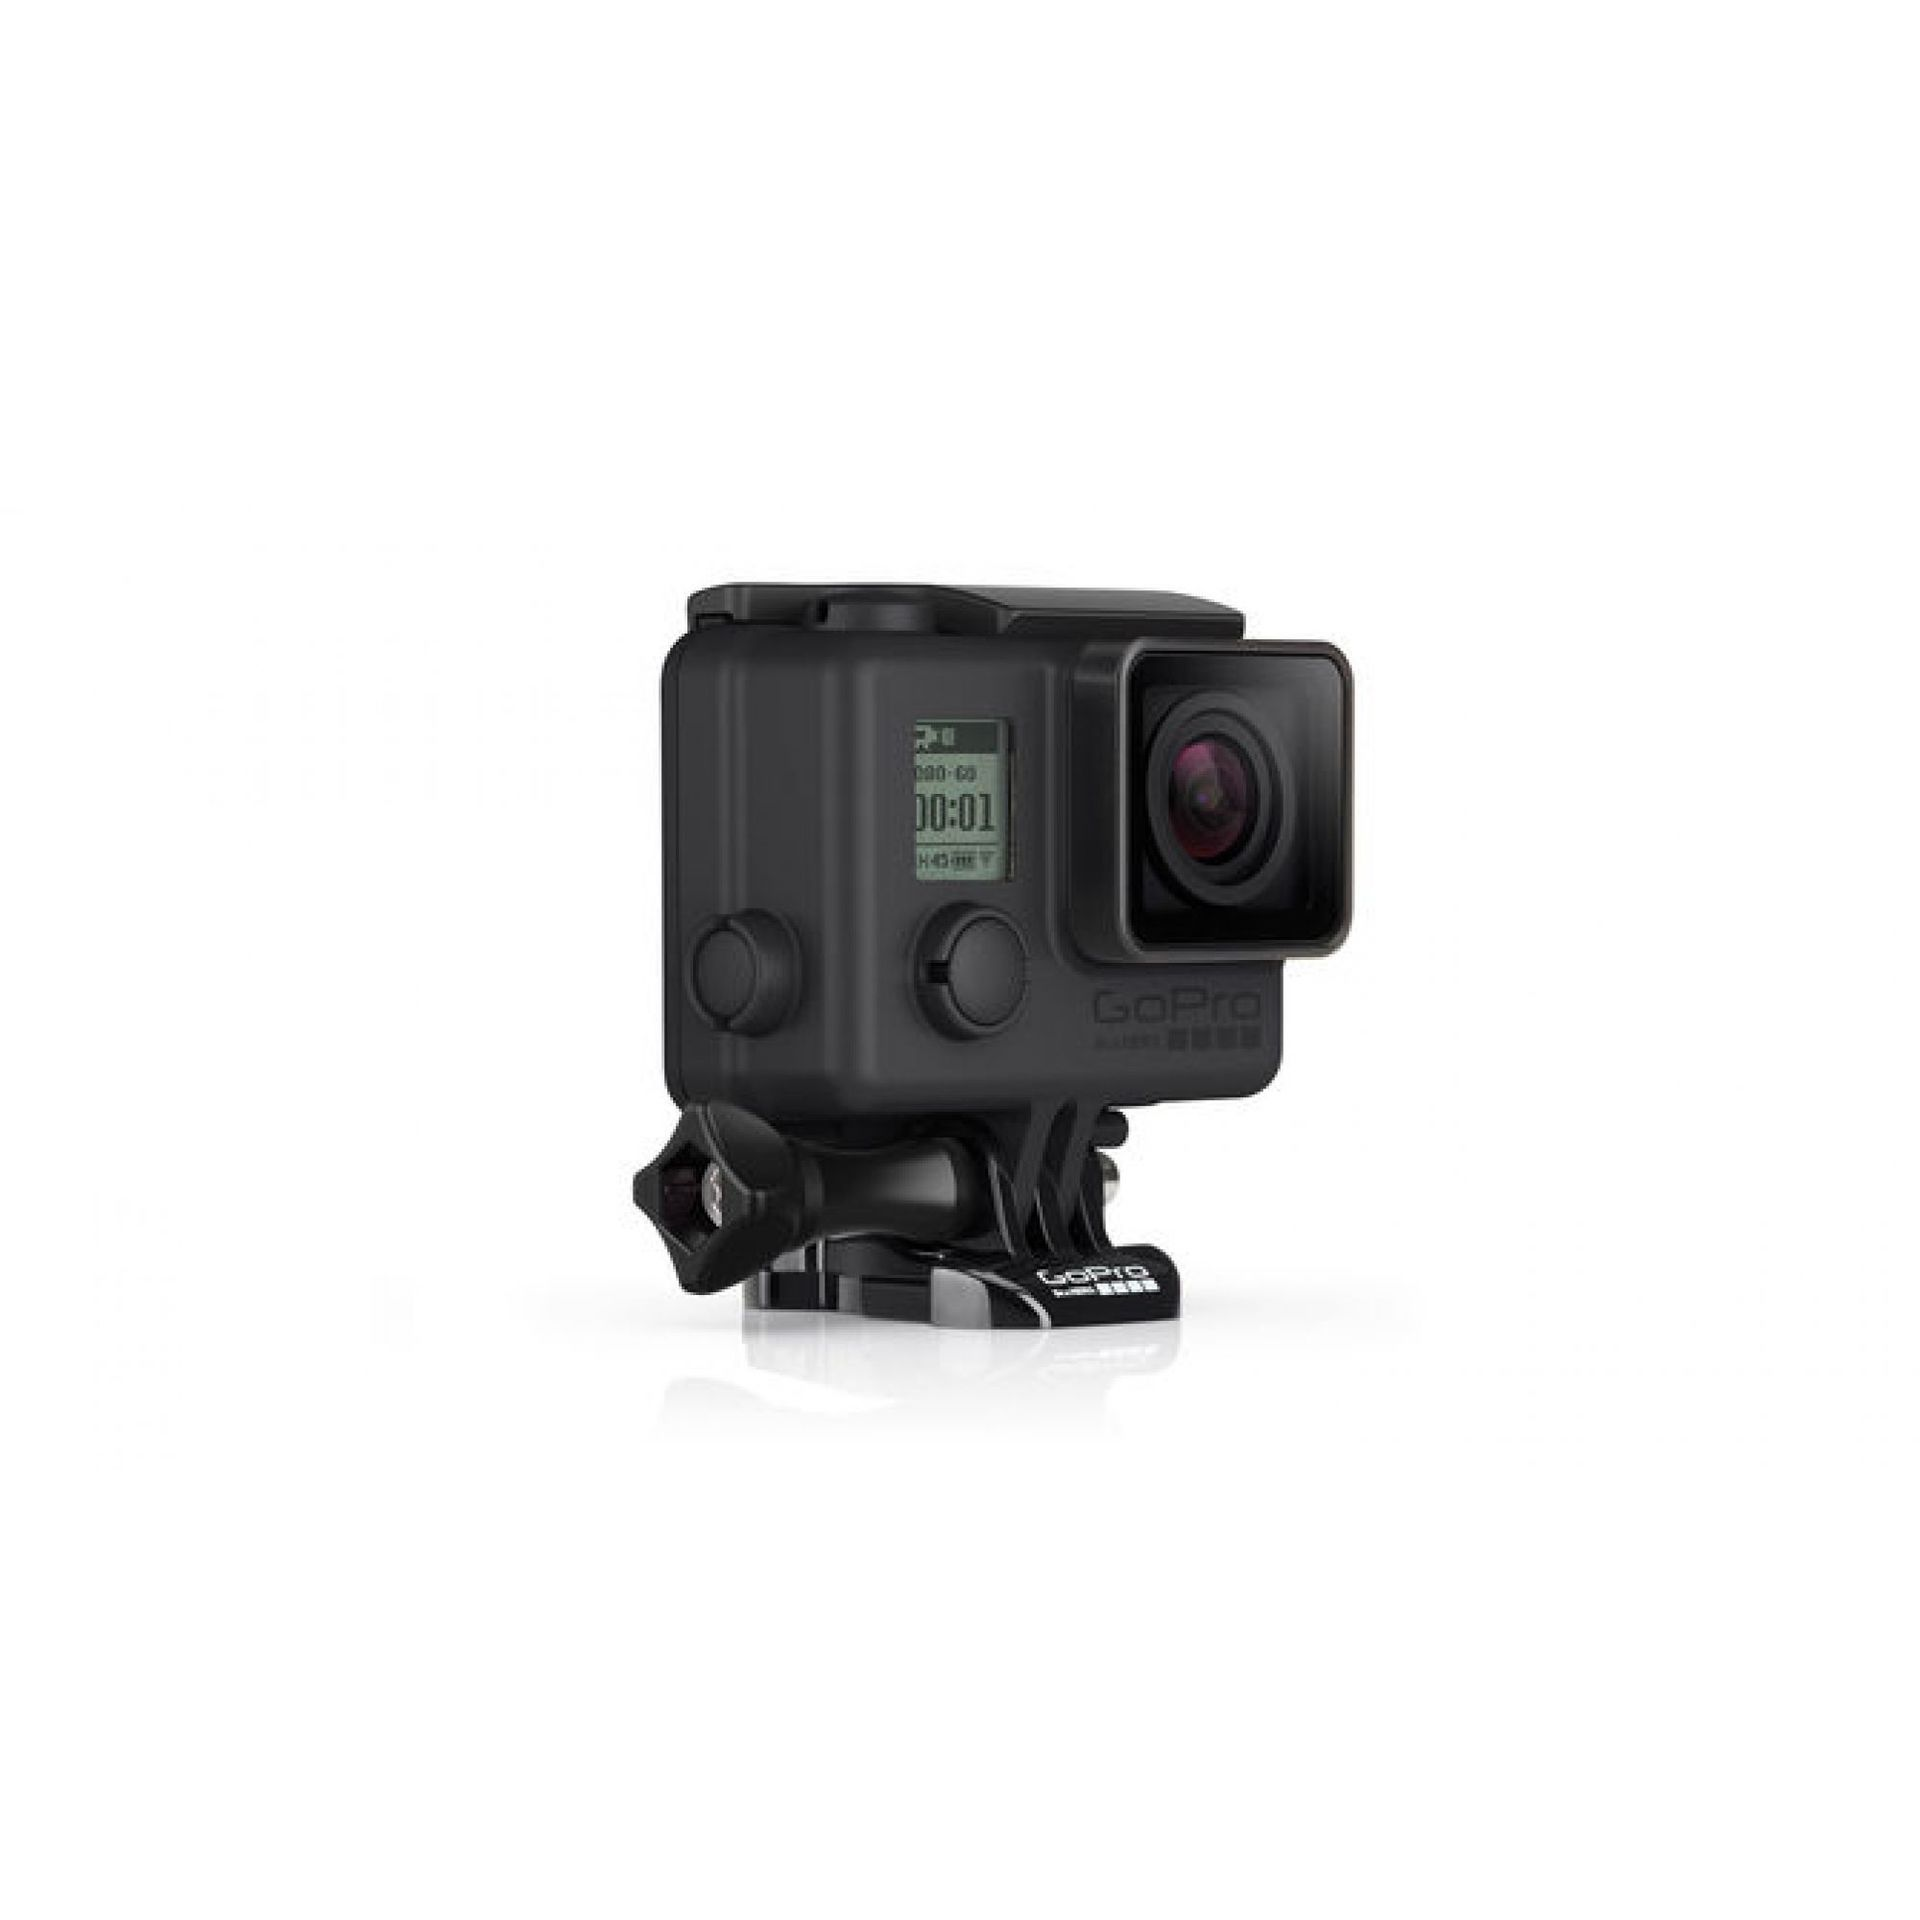 OBUDOWA GOPRO BLACKOUT HOUSING